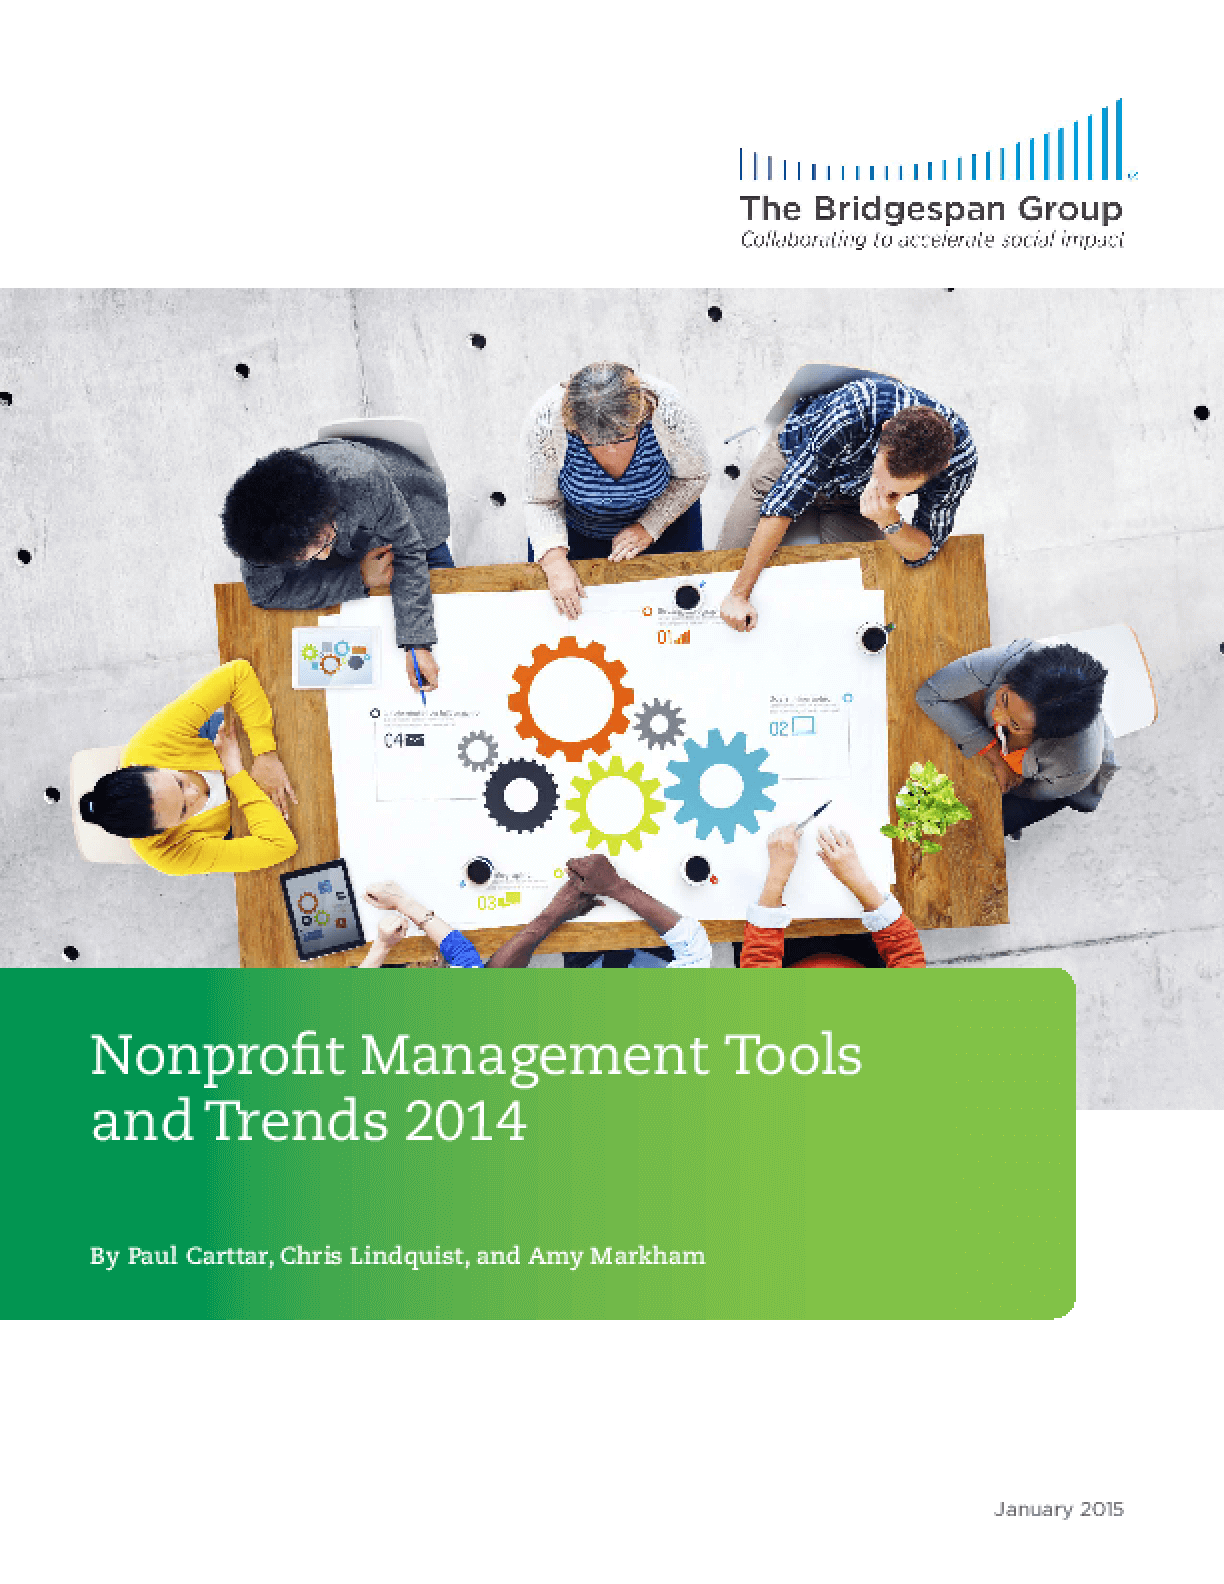 Nonprofit Management Tools and Trends 2014